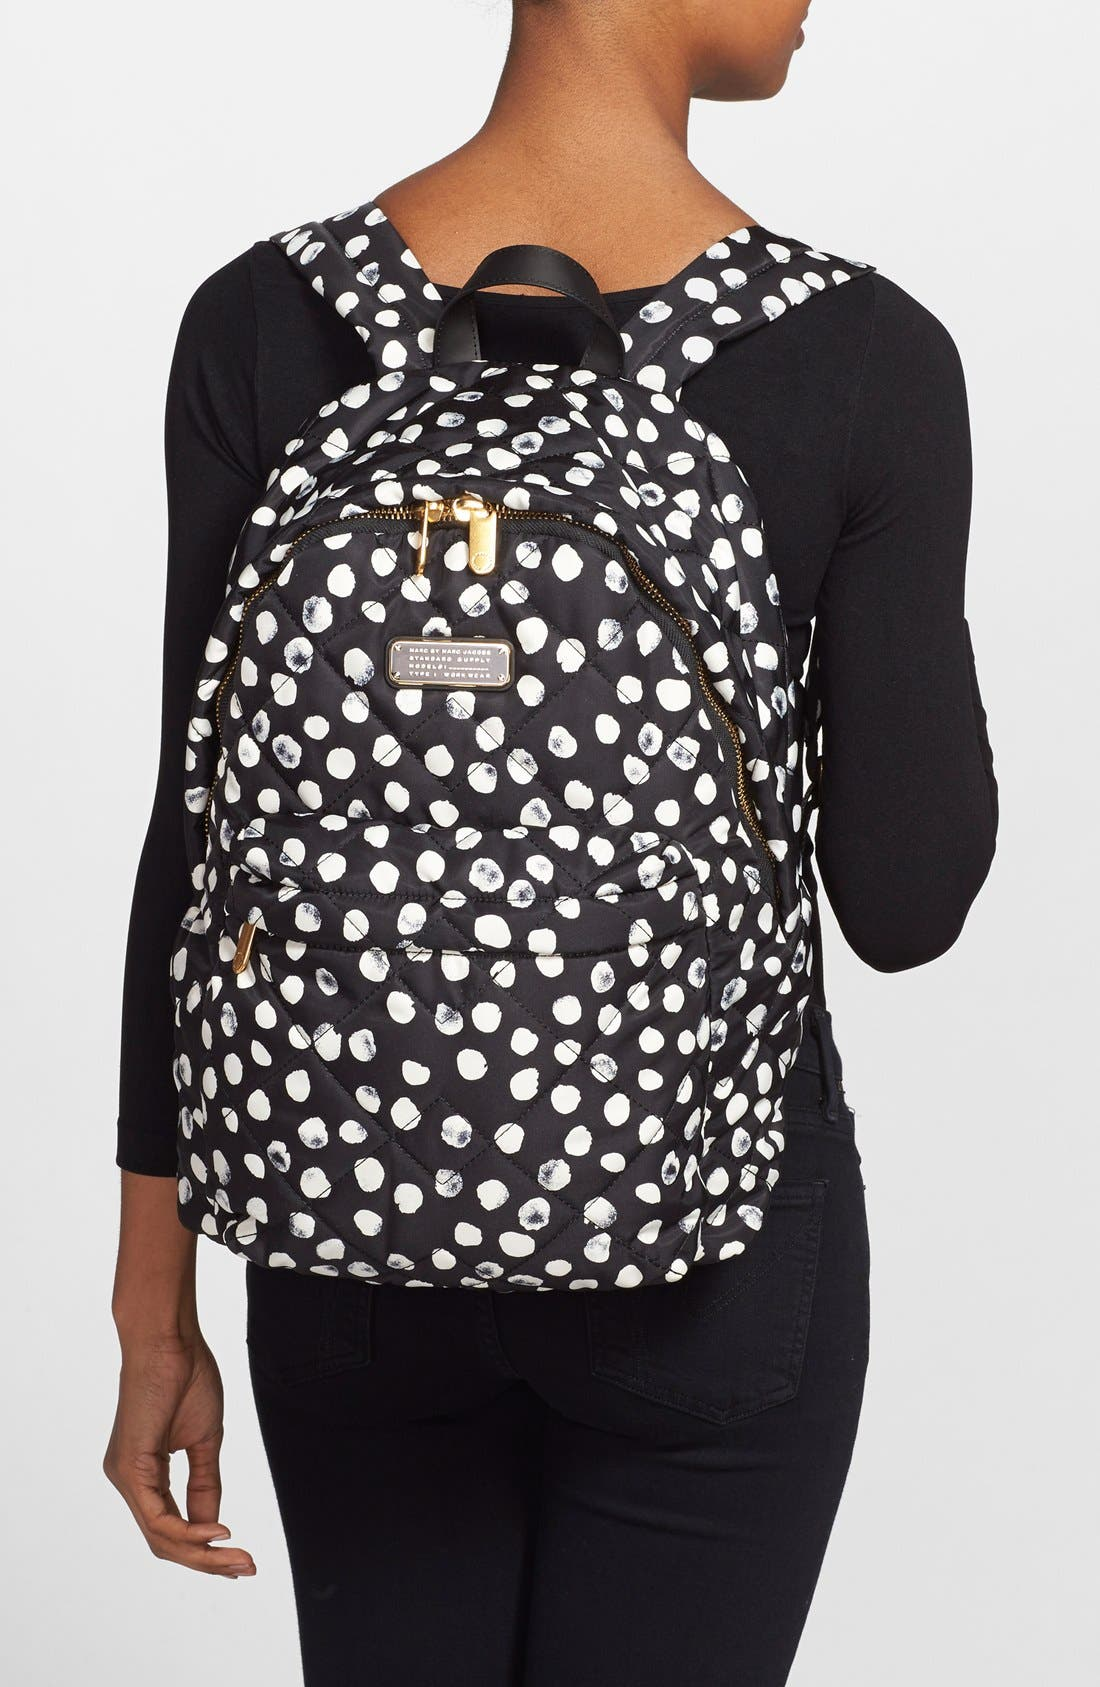 MARC JACOBS, MARC BY MARC JACOBS 'Crosby' Quilted Backpack, Alternate thumbnail 6, color, 001